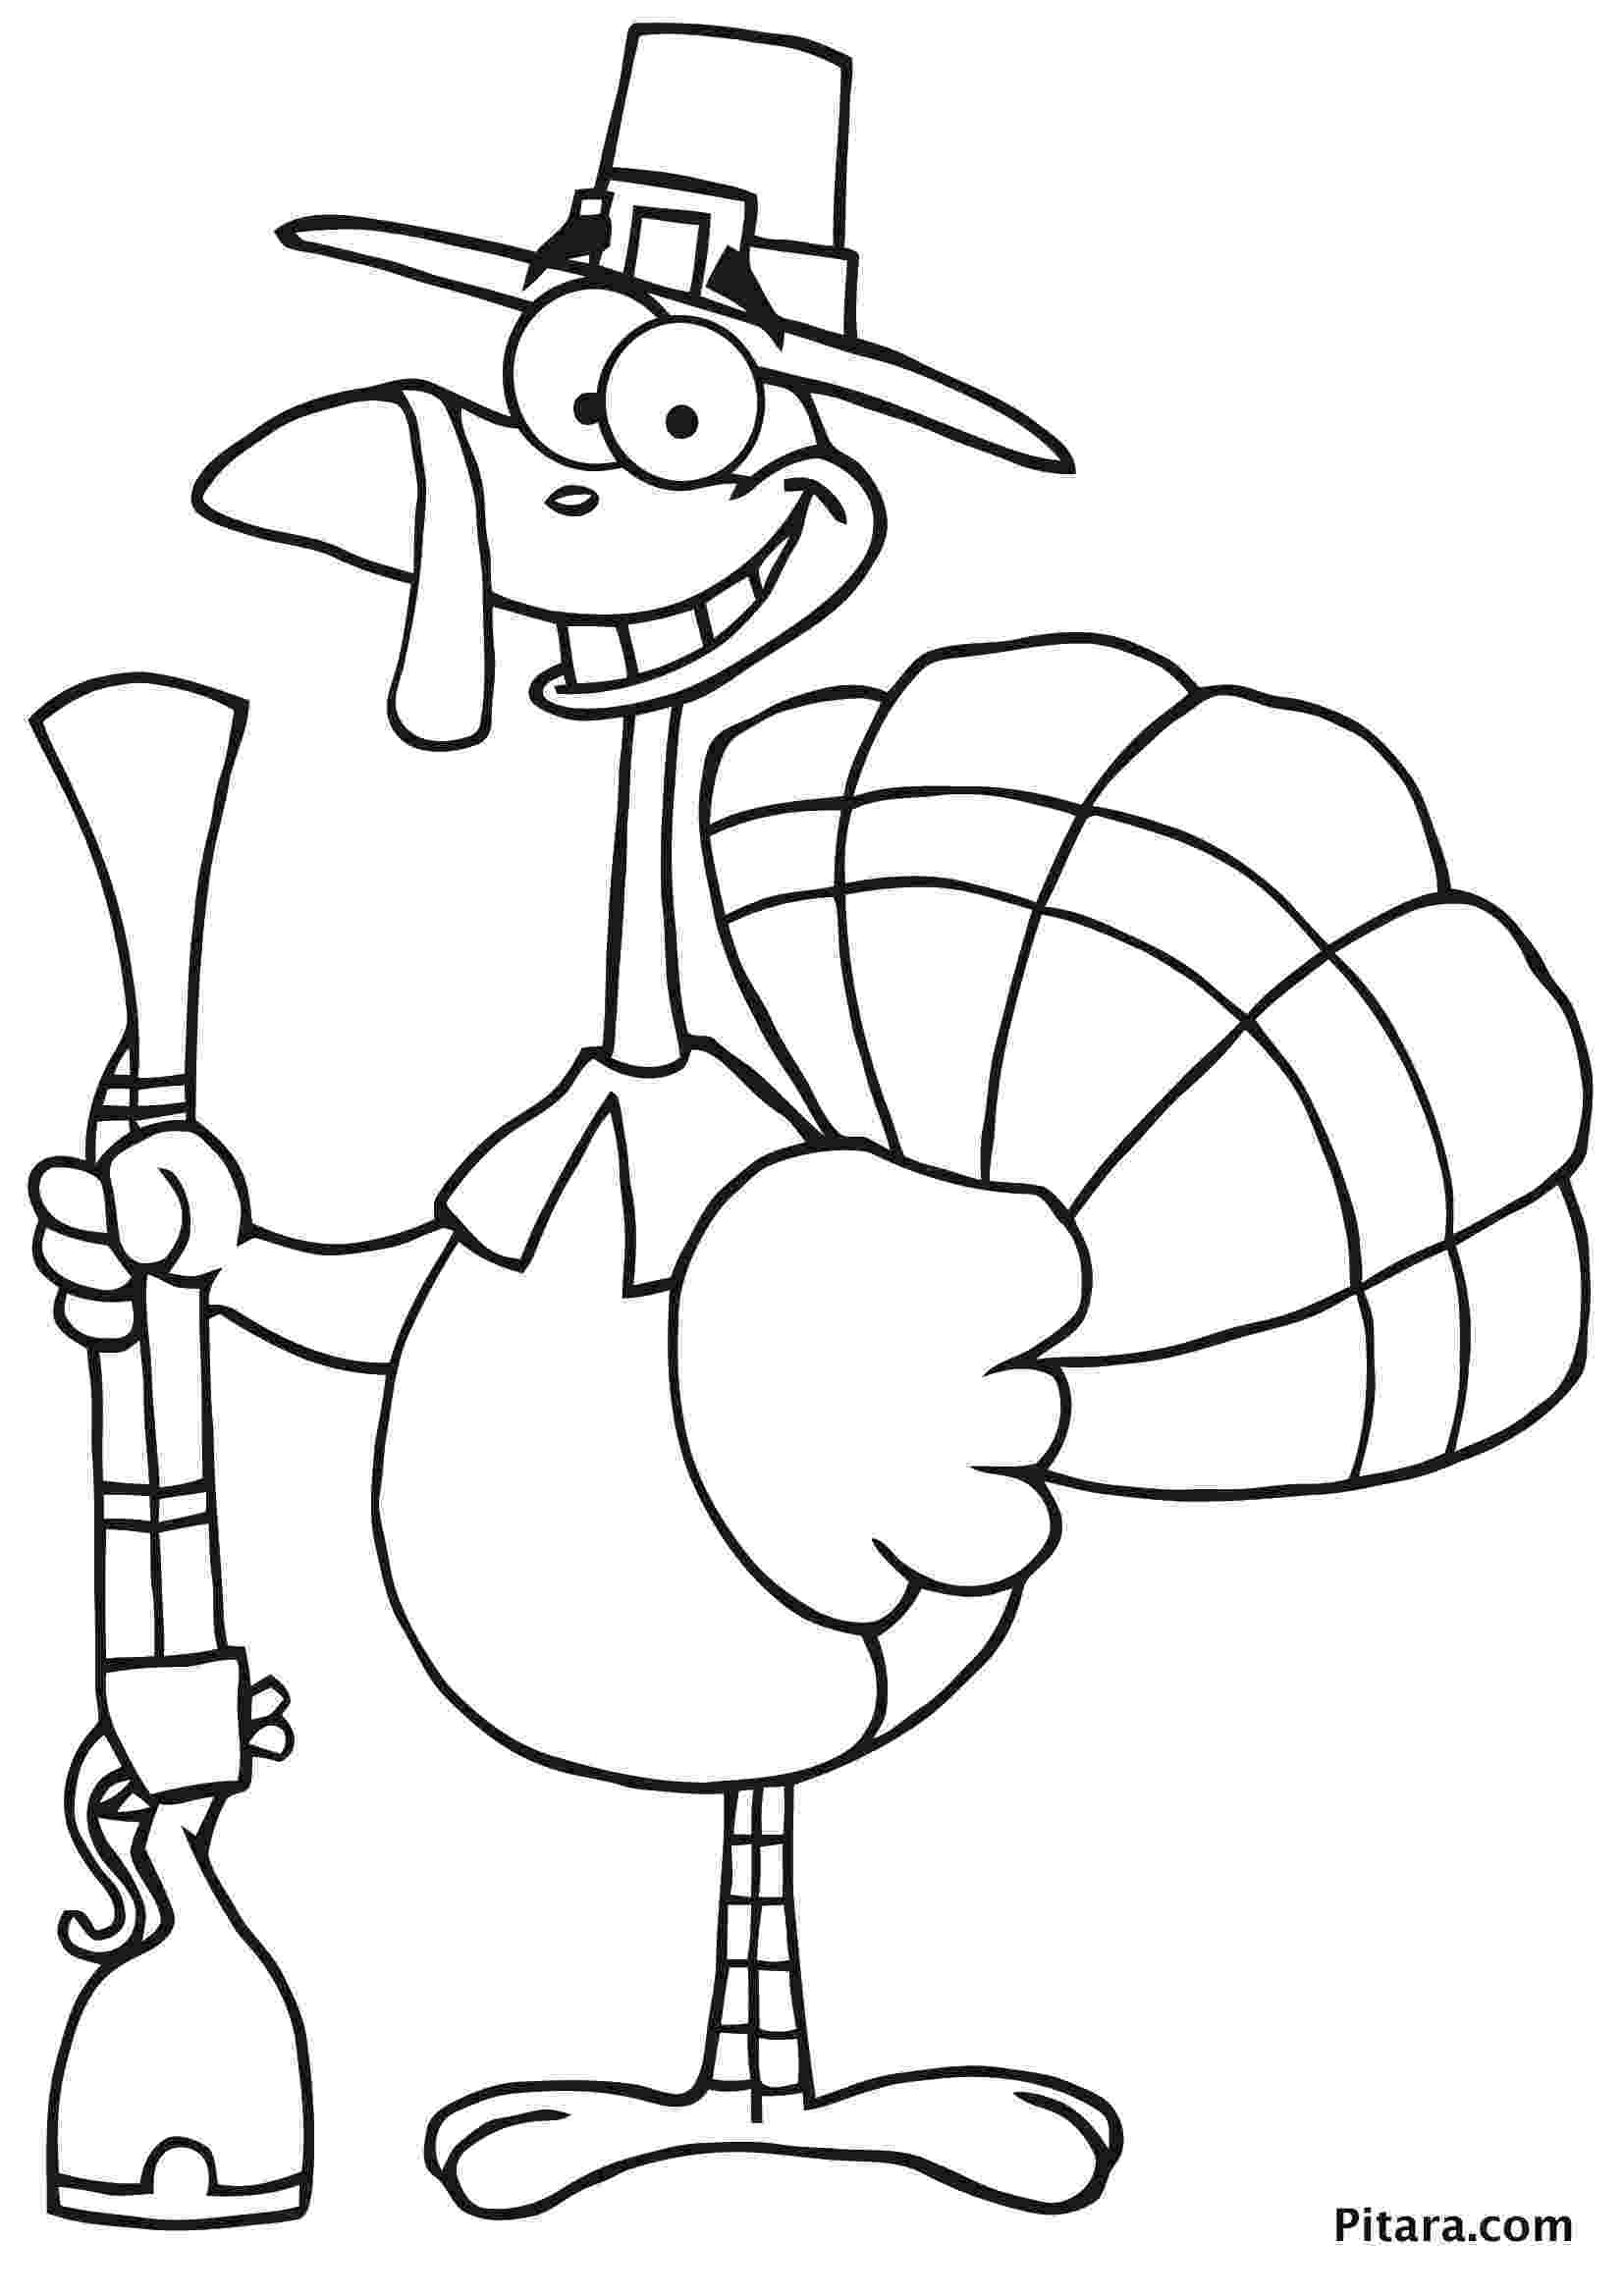 turkey coloring sheet turkey coloring pages for kids pitara kids network coloring turkey sheet